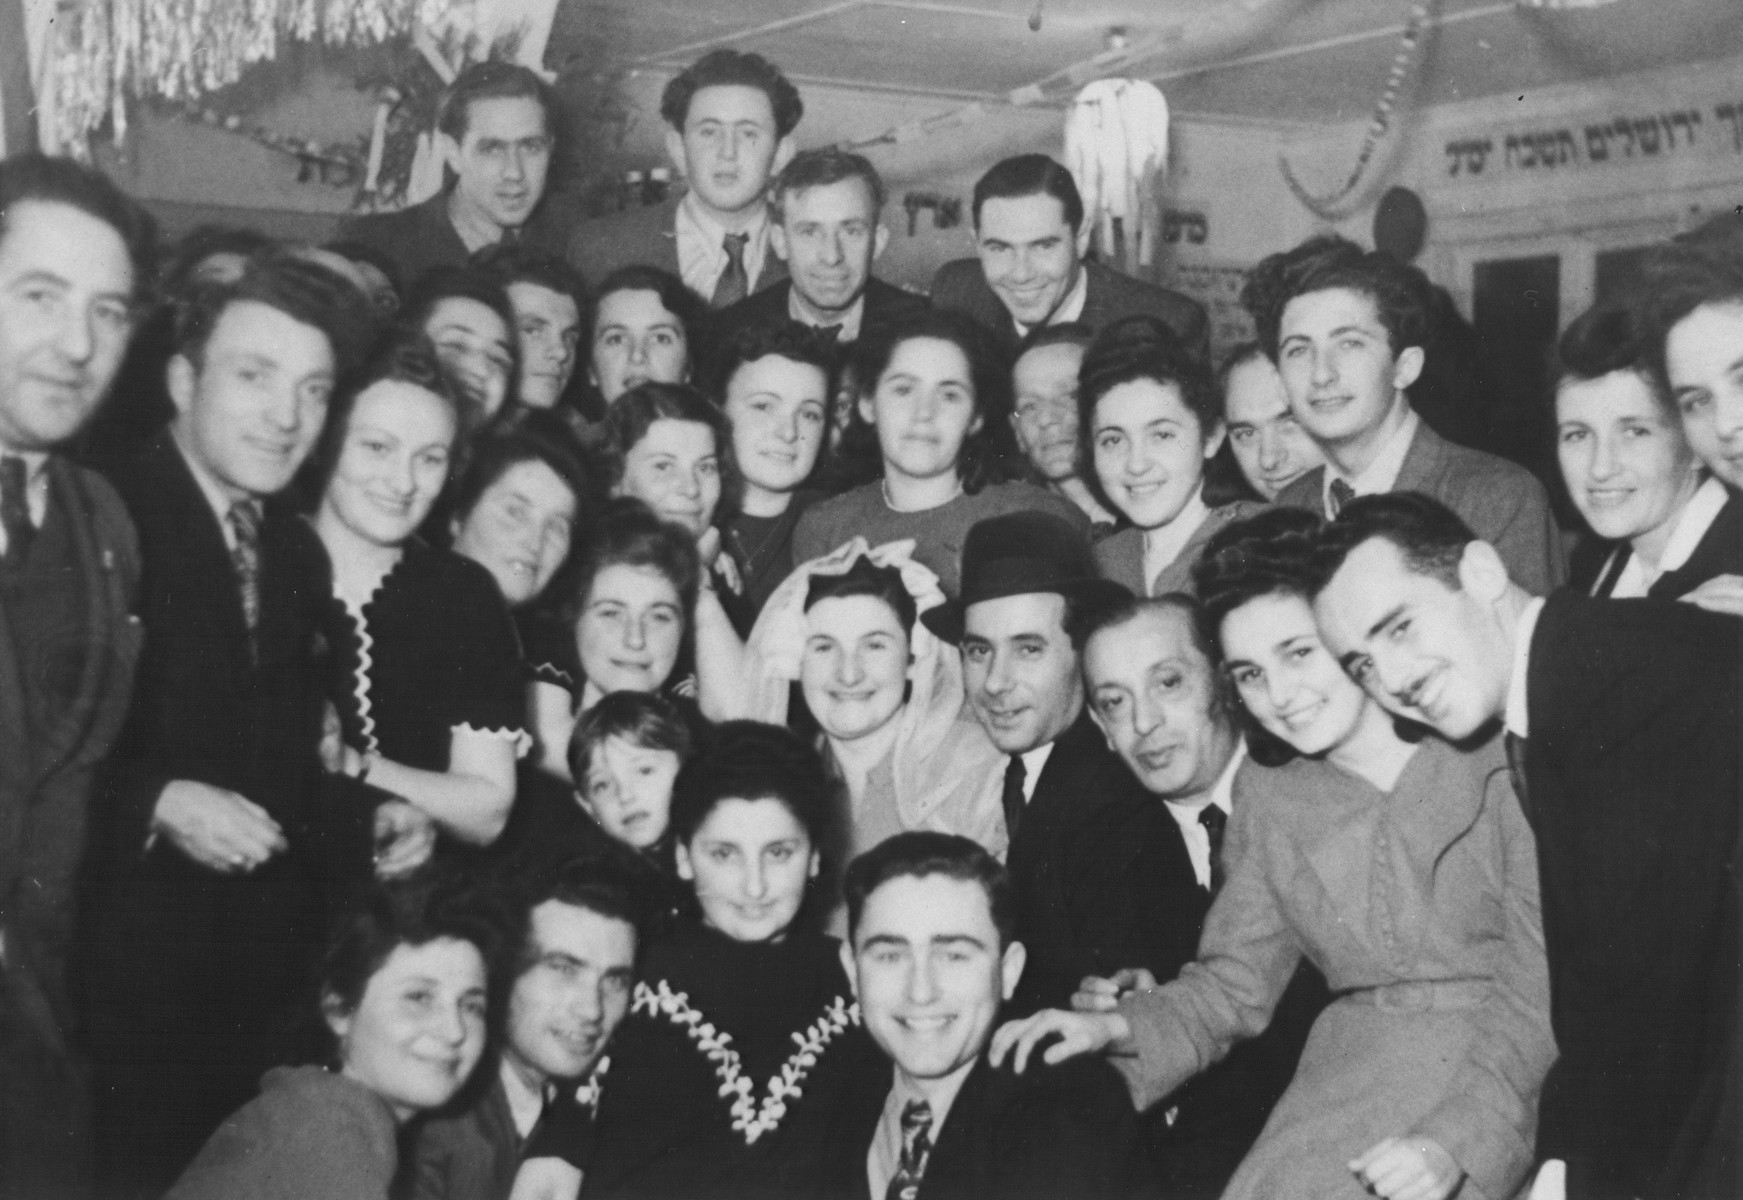 A group of Jewish DPs who are students at a teacher training center in Berlin, pose with one of their instructors and his bride at their wedding in the Schlachtensee displaced persons camp.   The wedding was officiated by Mayer Abramowitz.  Among those pictured are Yitzhak Warszawski, principal of a Jewish school in Wittenau (far left), Tonia Delaticki (standing behind the bride), David Gutensky (front row, center), Rachel Kosowski (second row from the front, second from the right, wearing a belted dress) with belt), Yeshayahu Zycer (top row, center), Leonhard Natkowitz (top row, right) and Michael Gleibermann (third row from the front, third from the right, behind Rachel Kosowksi).